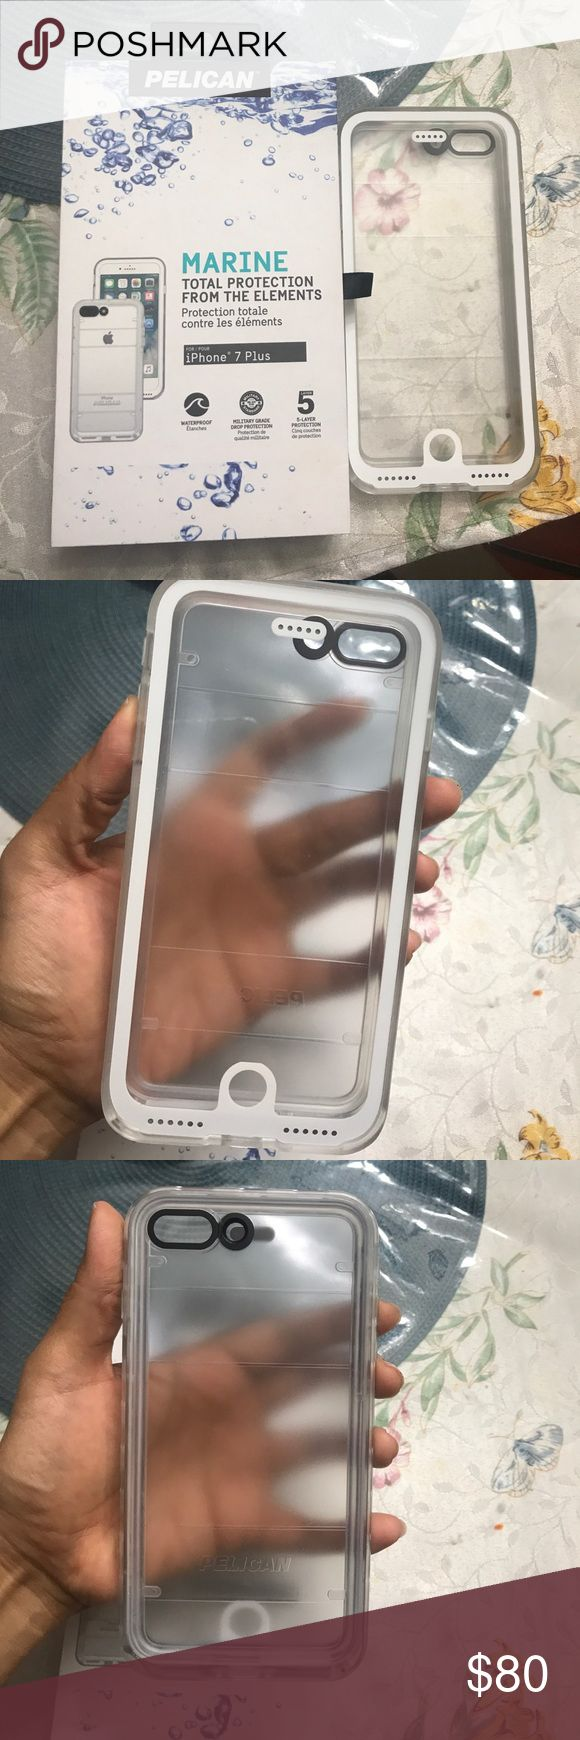 Pelican Marine waterproof iPhone 7 plus case NWT... bought for my dad but realized he has a 6 S plus not a 7plus... it is waterproof and works just like a lifeproof... brand new... nothing wrong with it ... perfect for summer vacation  pelican Accessories Phone Cases